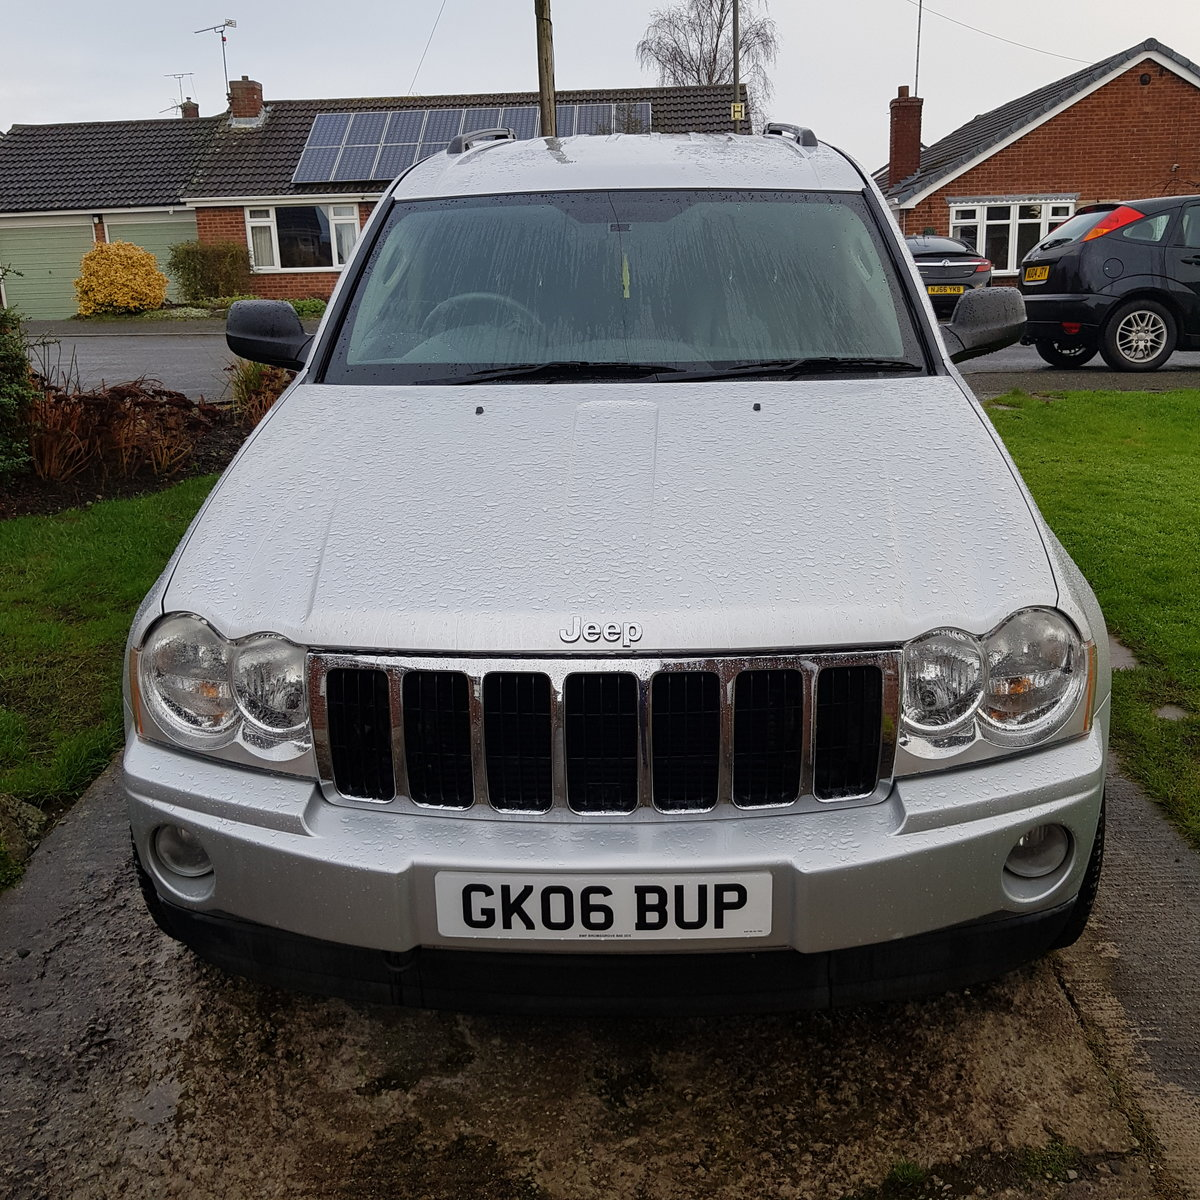 2006 Grand cherokee*new wheels/tyres*long mot*l For Sale (picture 5 of 6)